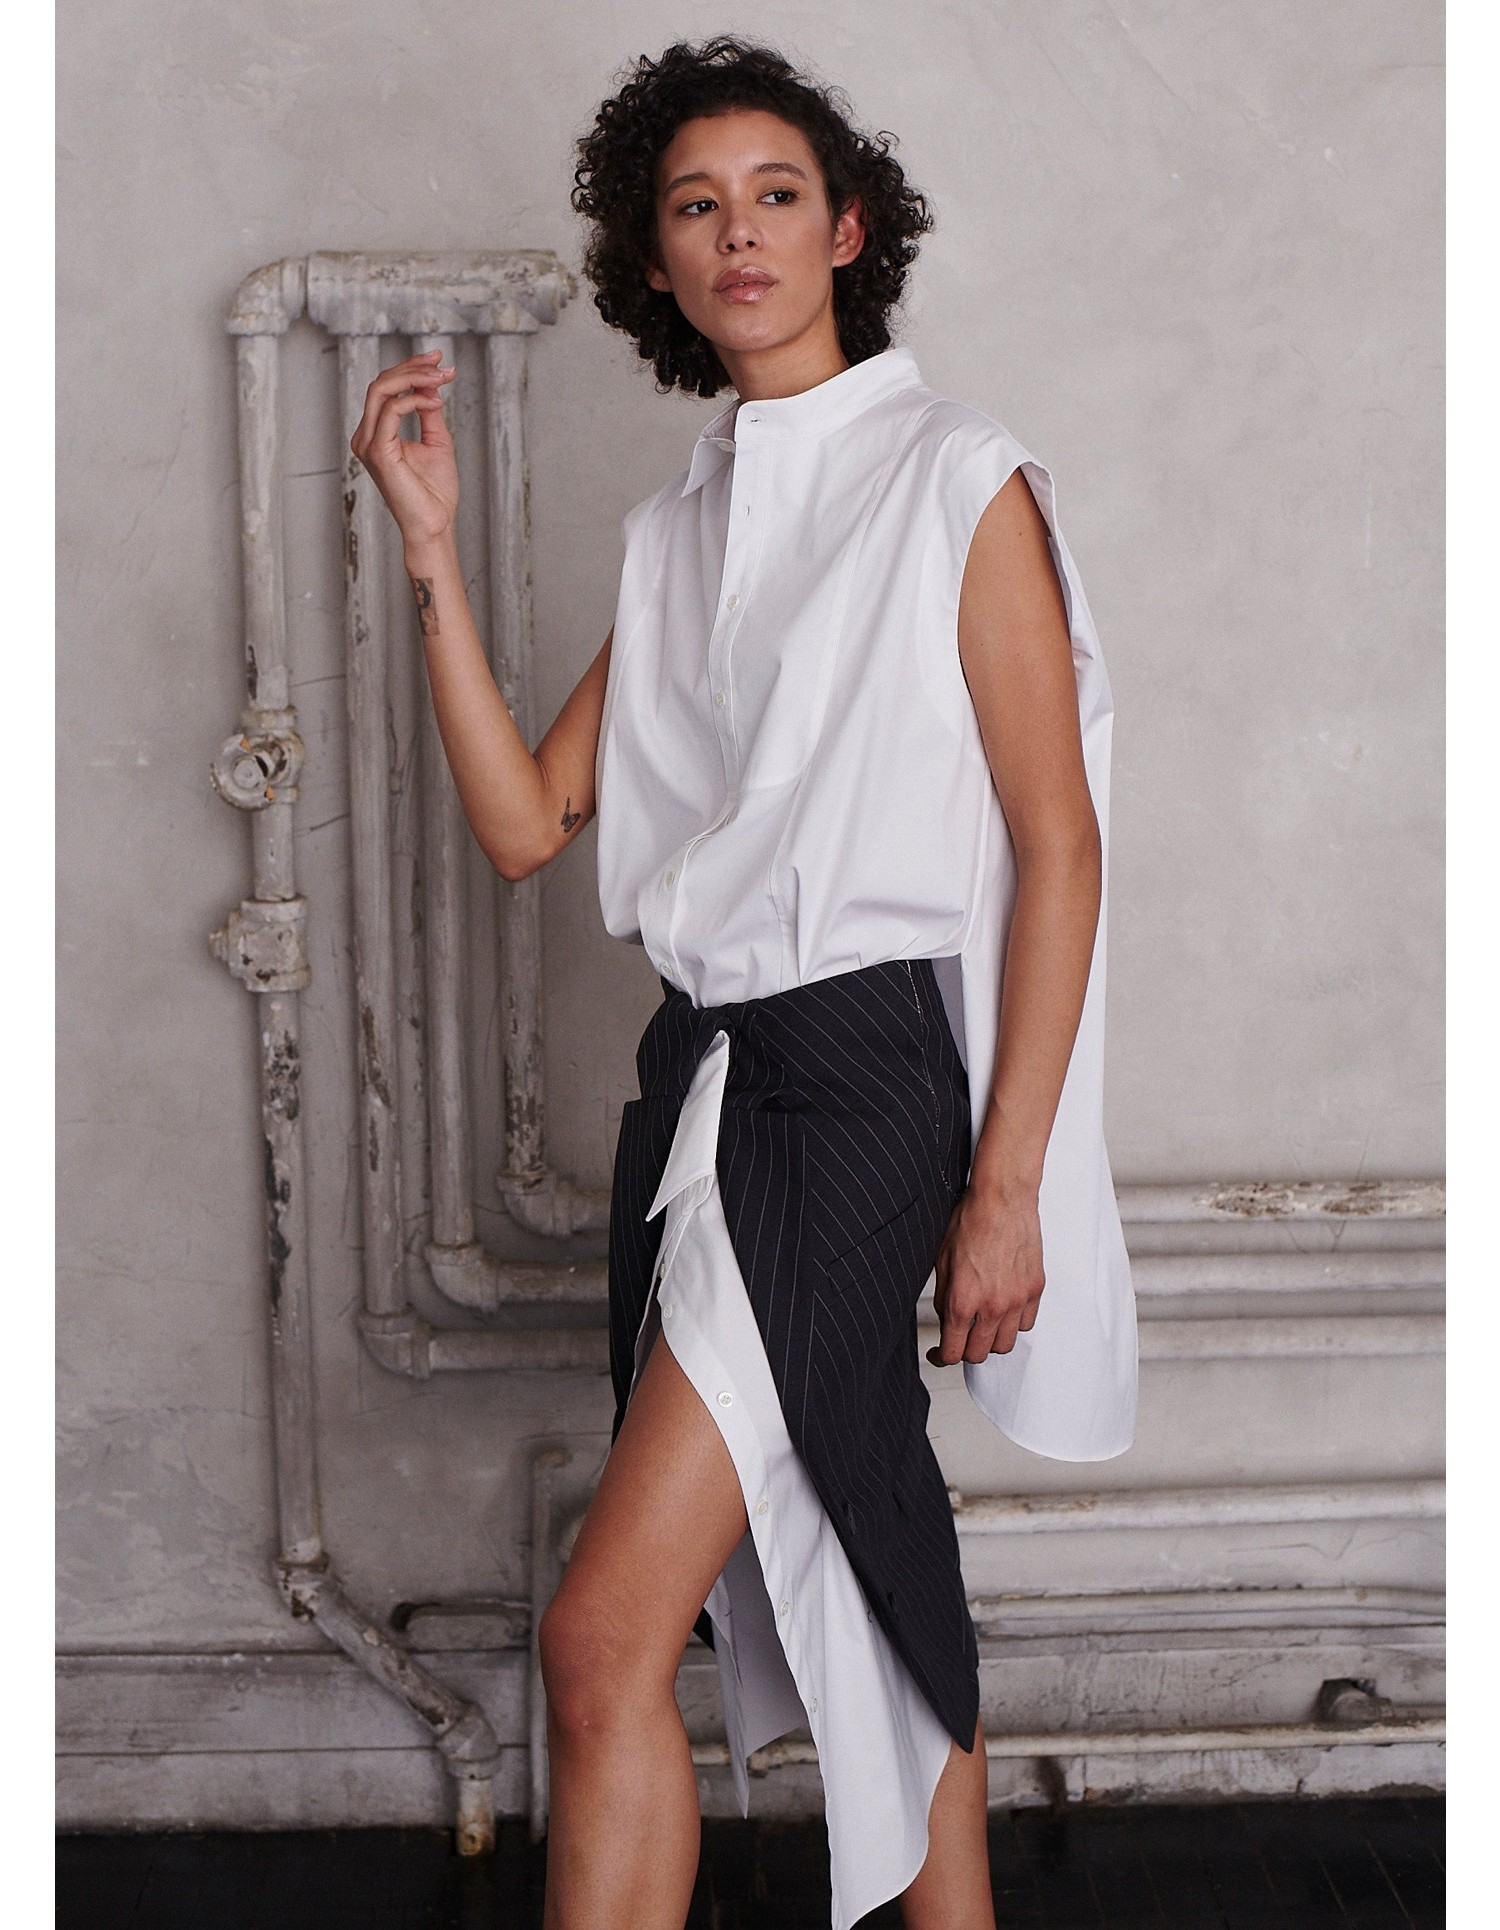 MONSE Half and Half Sleeveless Shirt in White on Model Side View